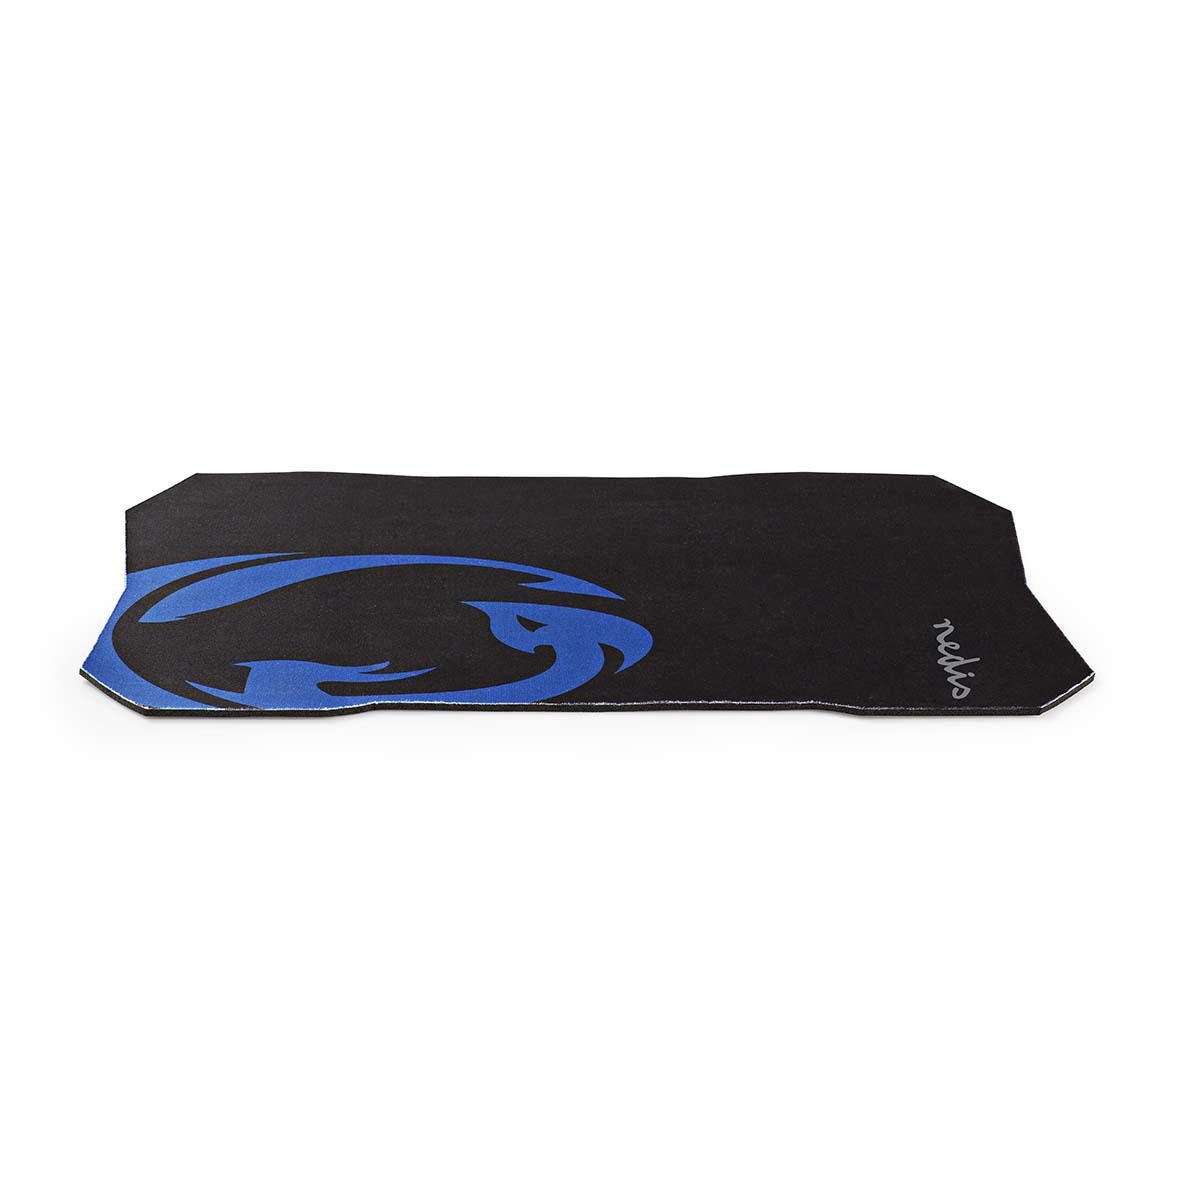 Nedis Gaming Muismat Anti-slip en waterproof onderkant